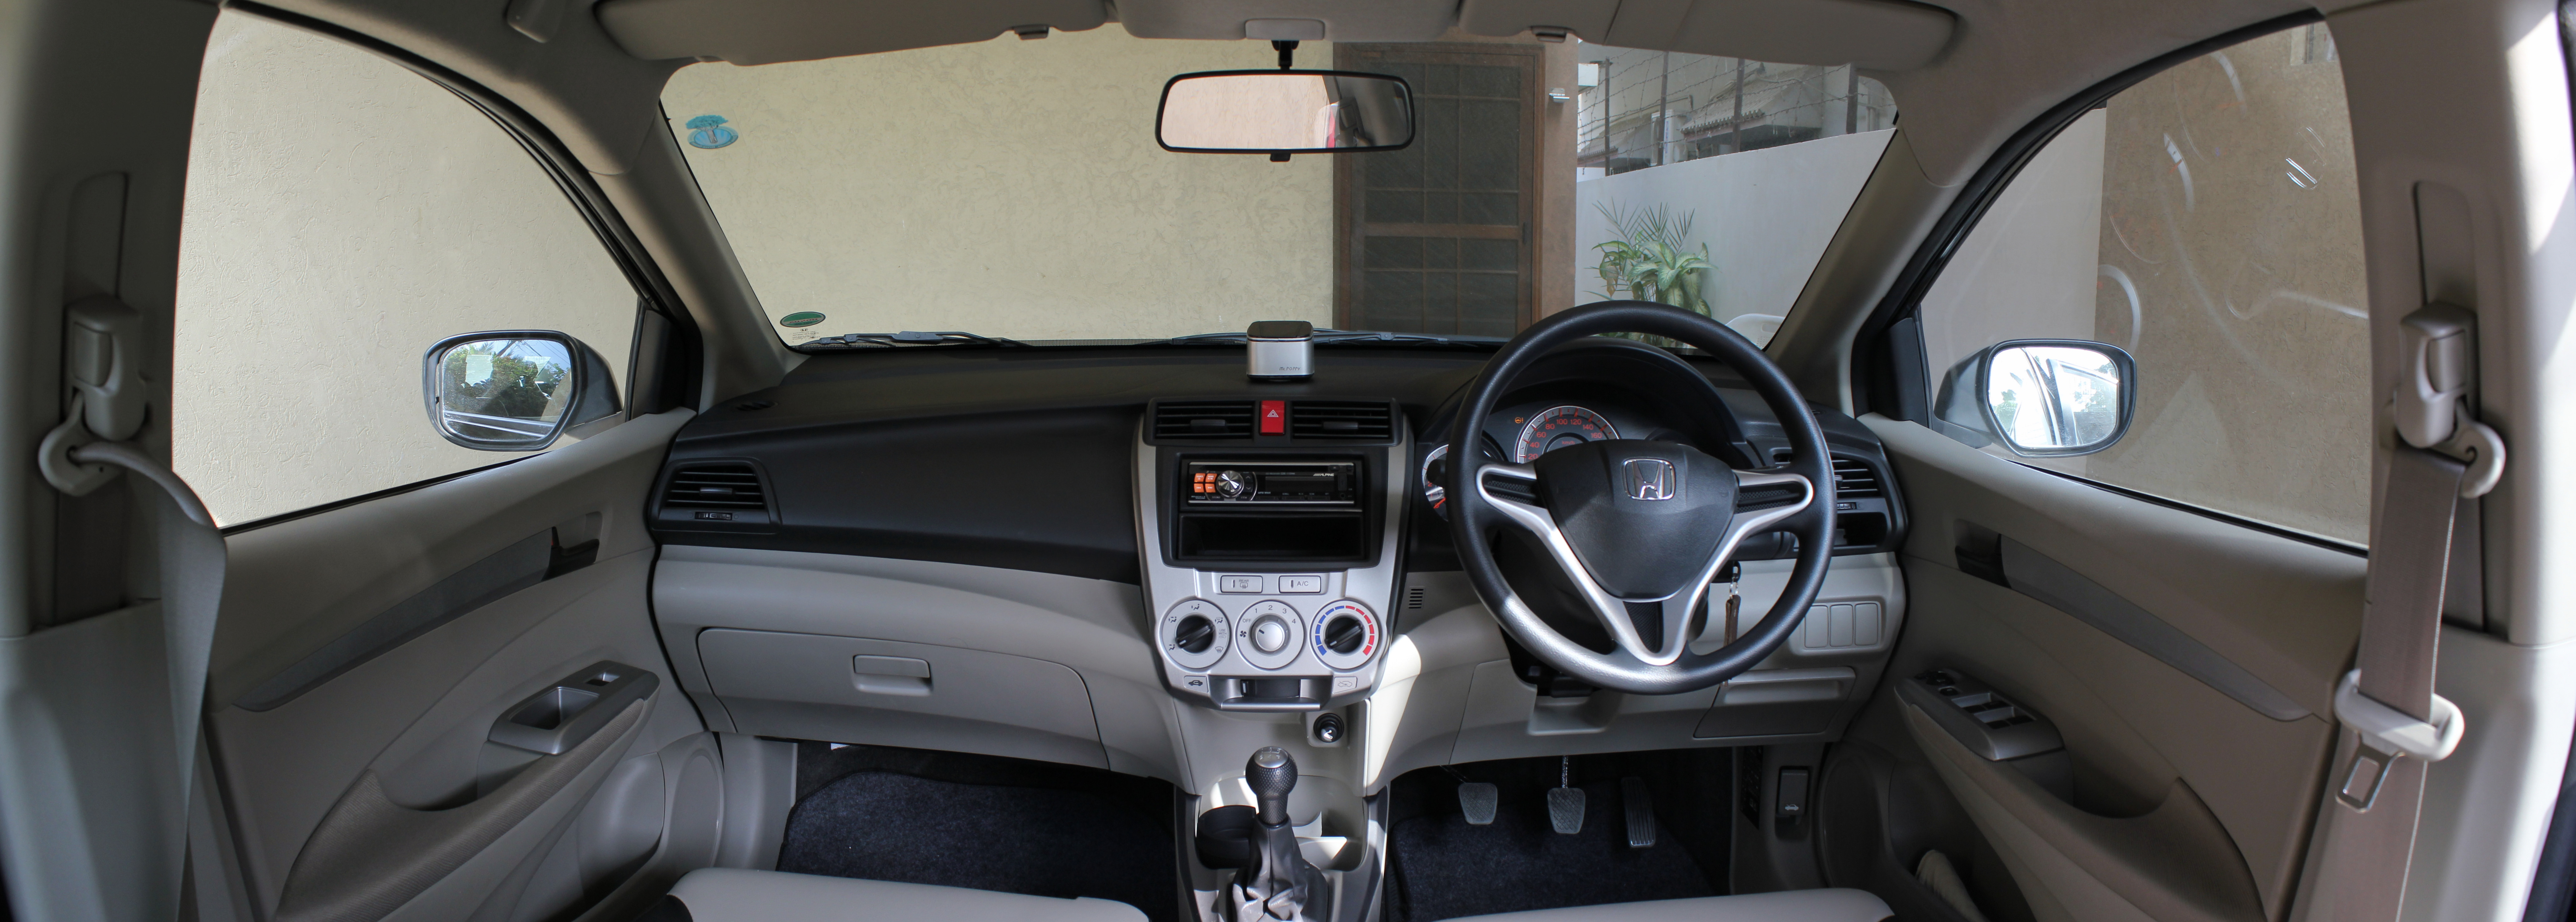 Honda City 2021 Price In Pakistan Pictures Reviews Pakwheels